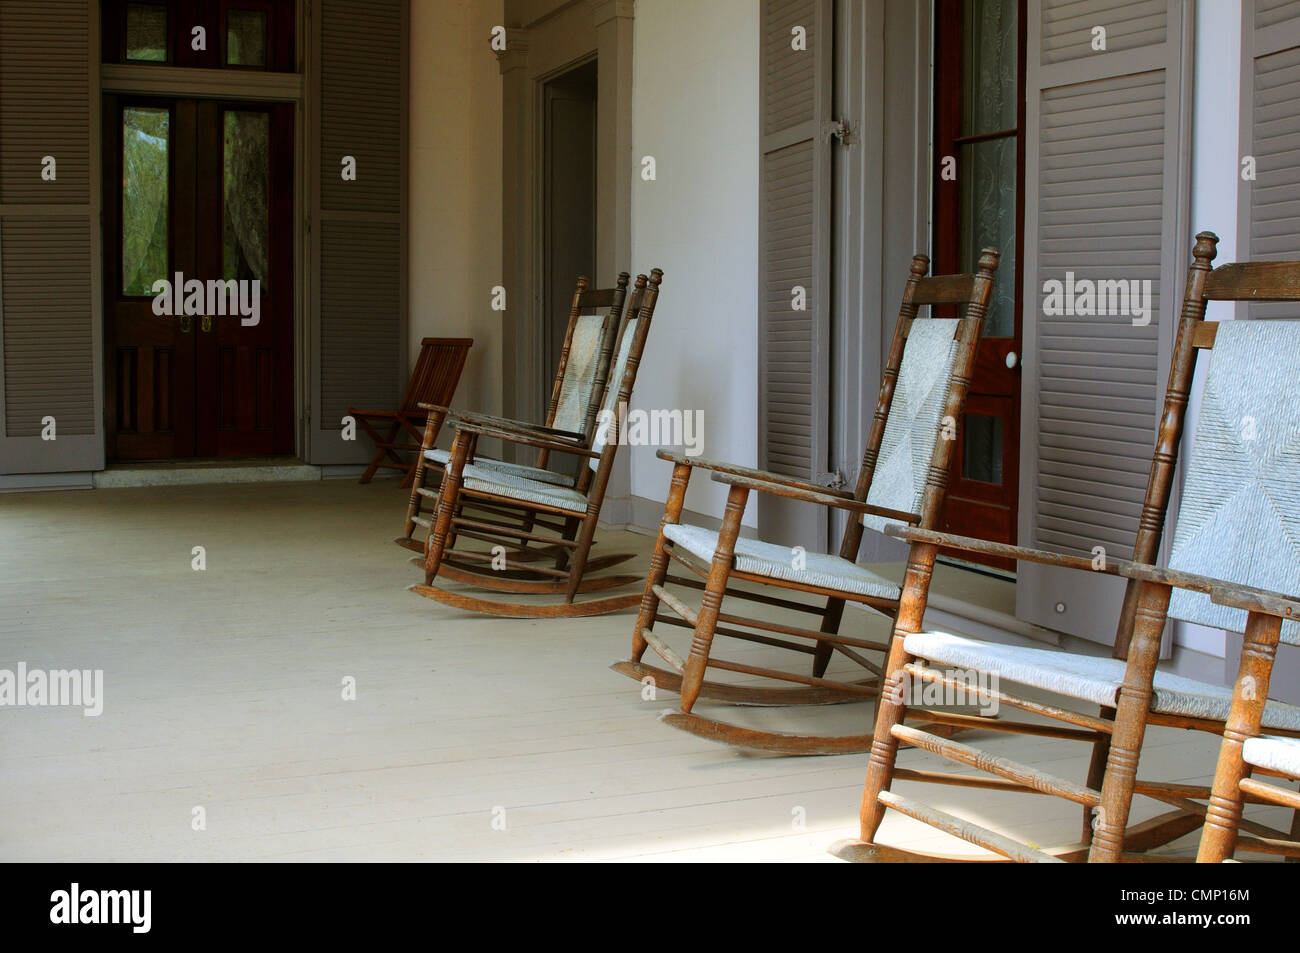 Exceptionnel Rocking Chairs On The Porch Of An Antebellum Southern Plantation Mansion